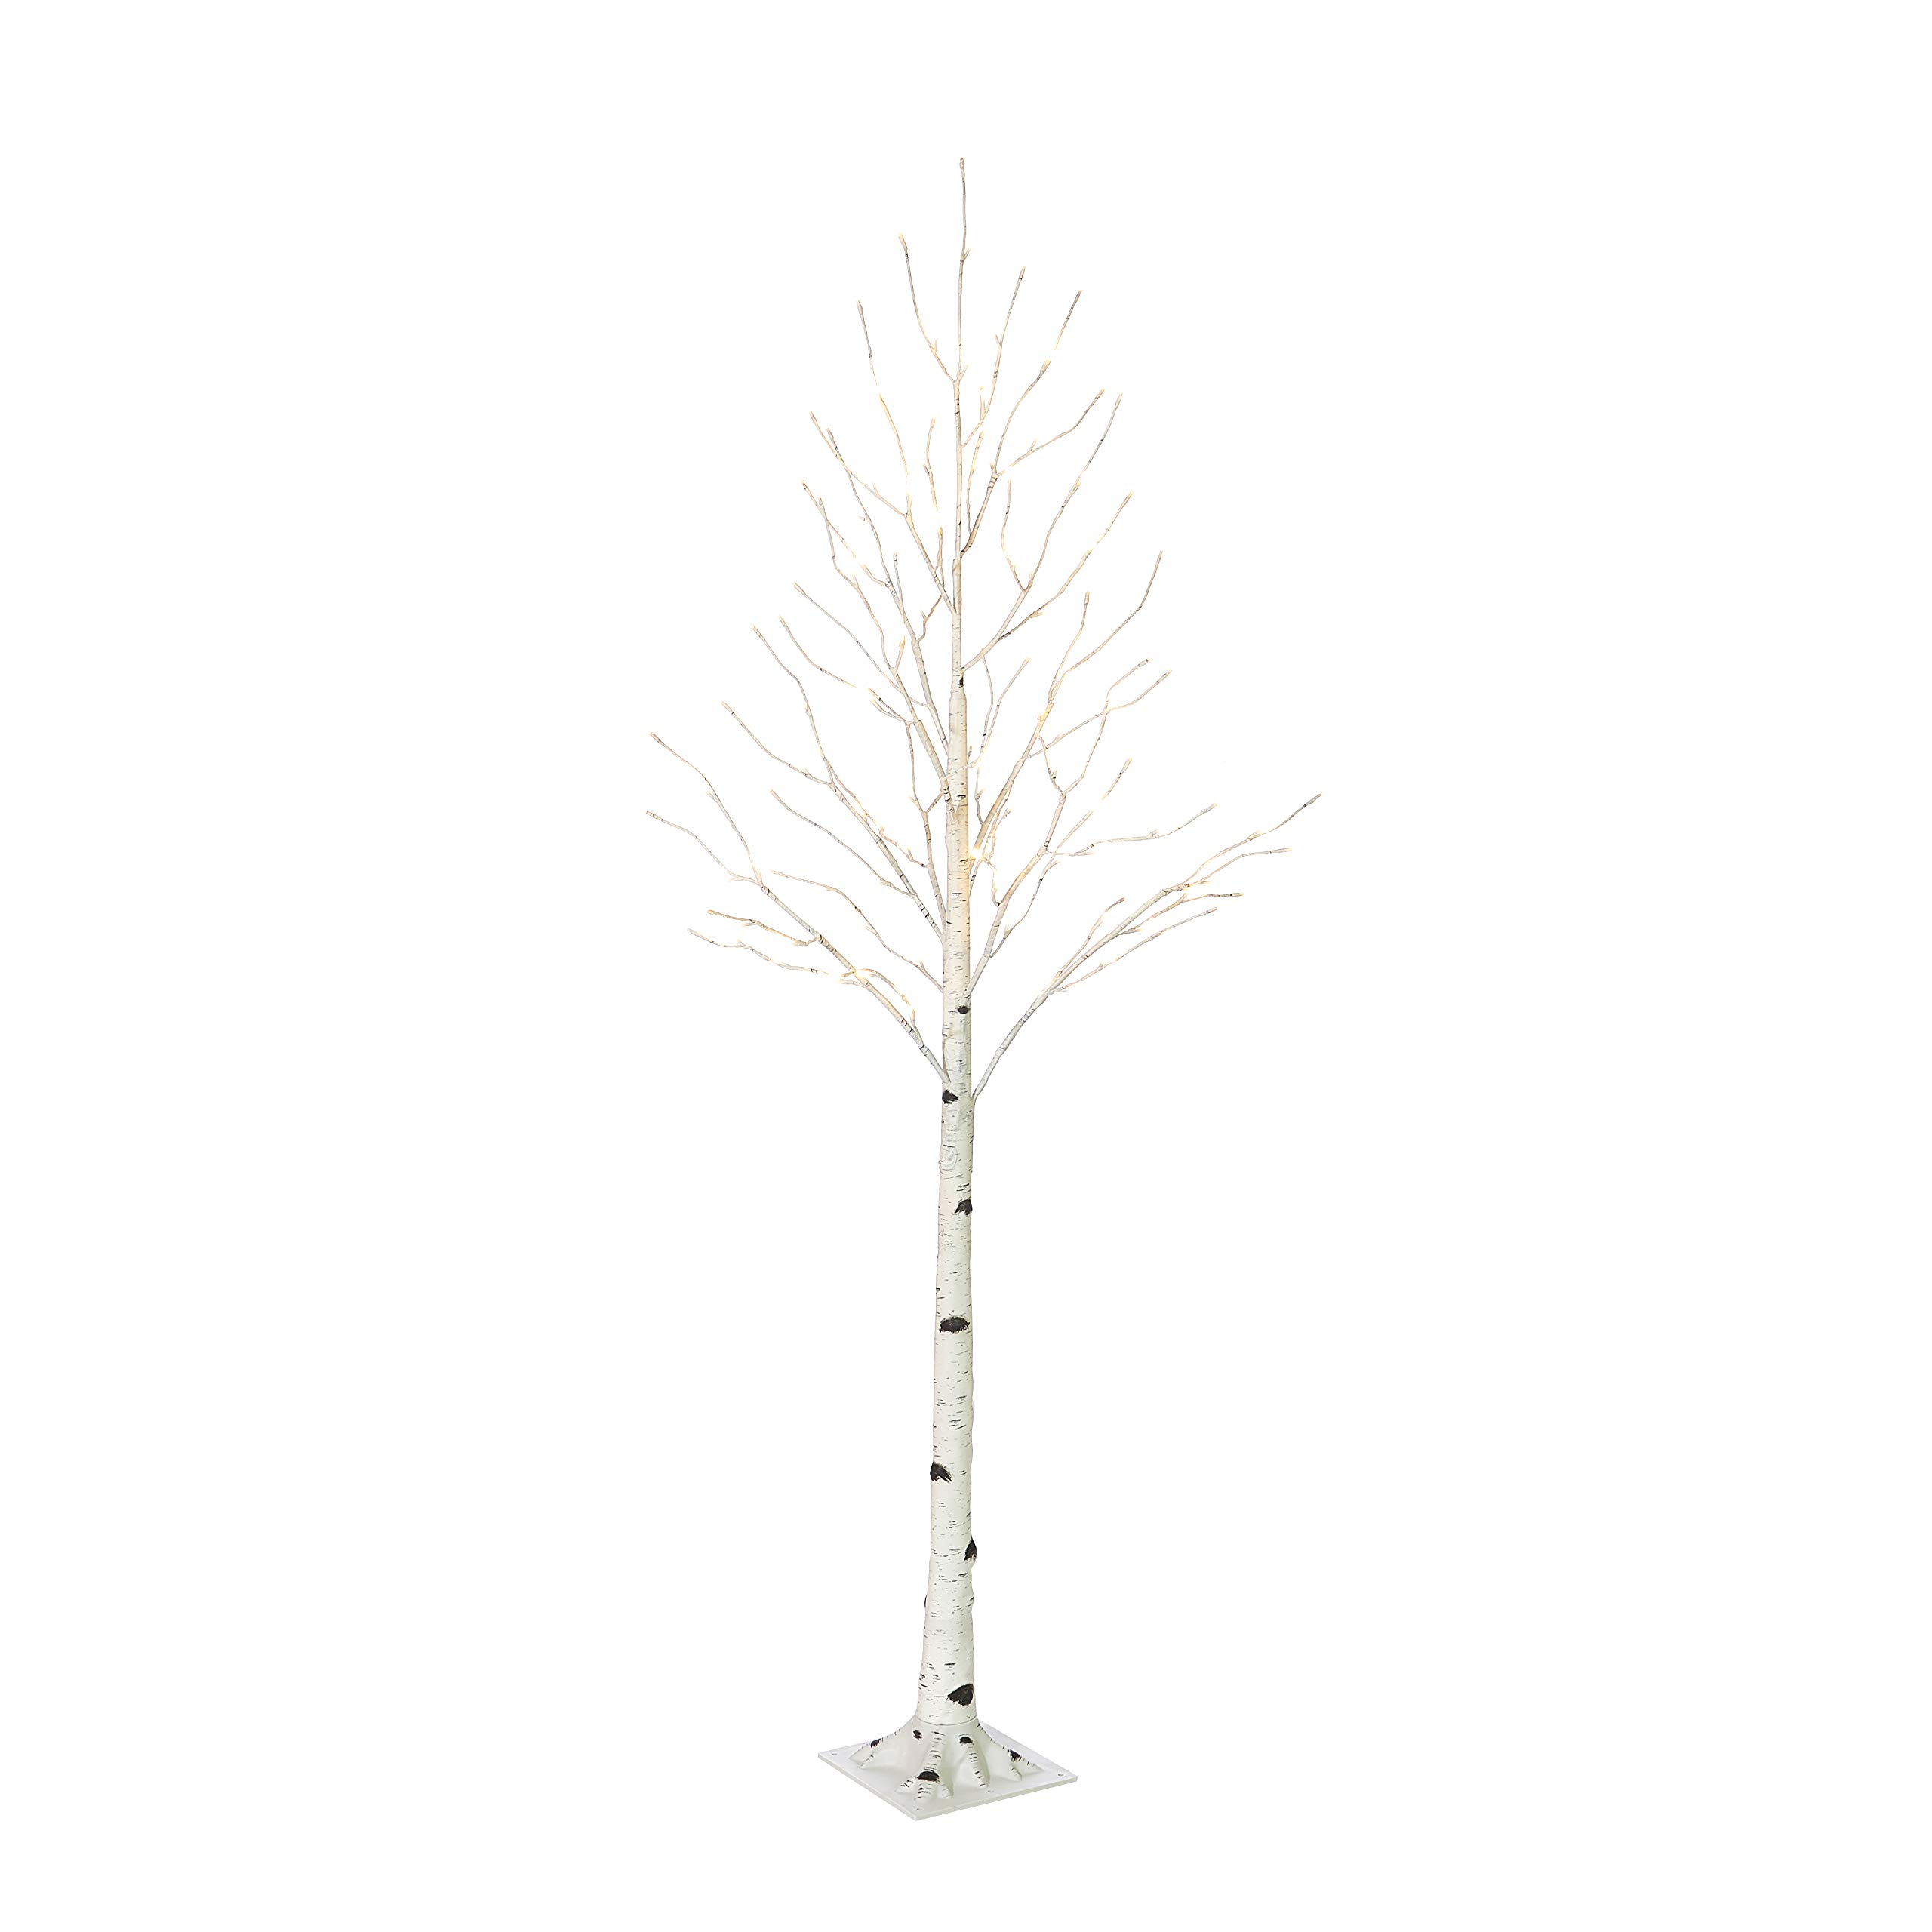 Hairui Pre Lit Birch Tree 4FT 72L for Home Decoration, White Christmas Tree with LED Lights Warm White, Lighted Artificial Tree with Partial Twinkling Feature Output 24V Safety Voltage